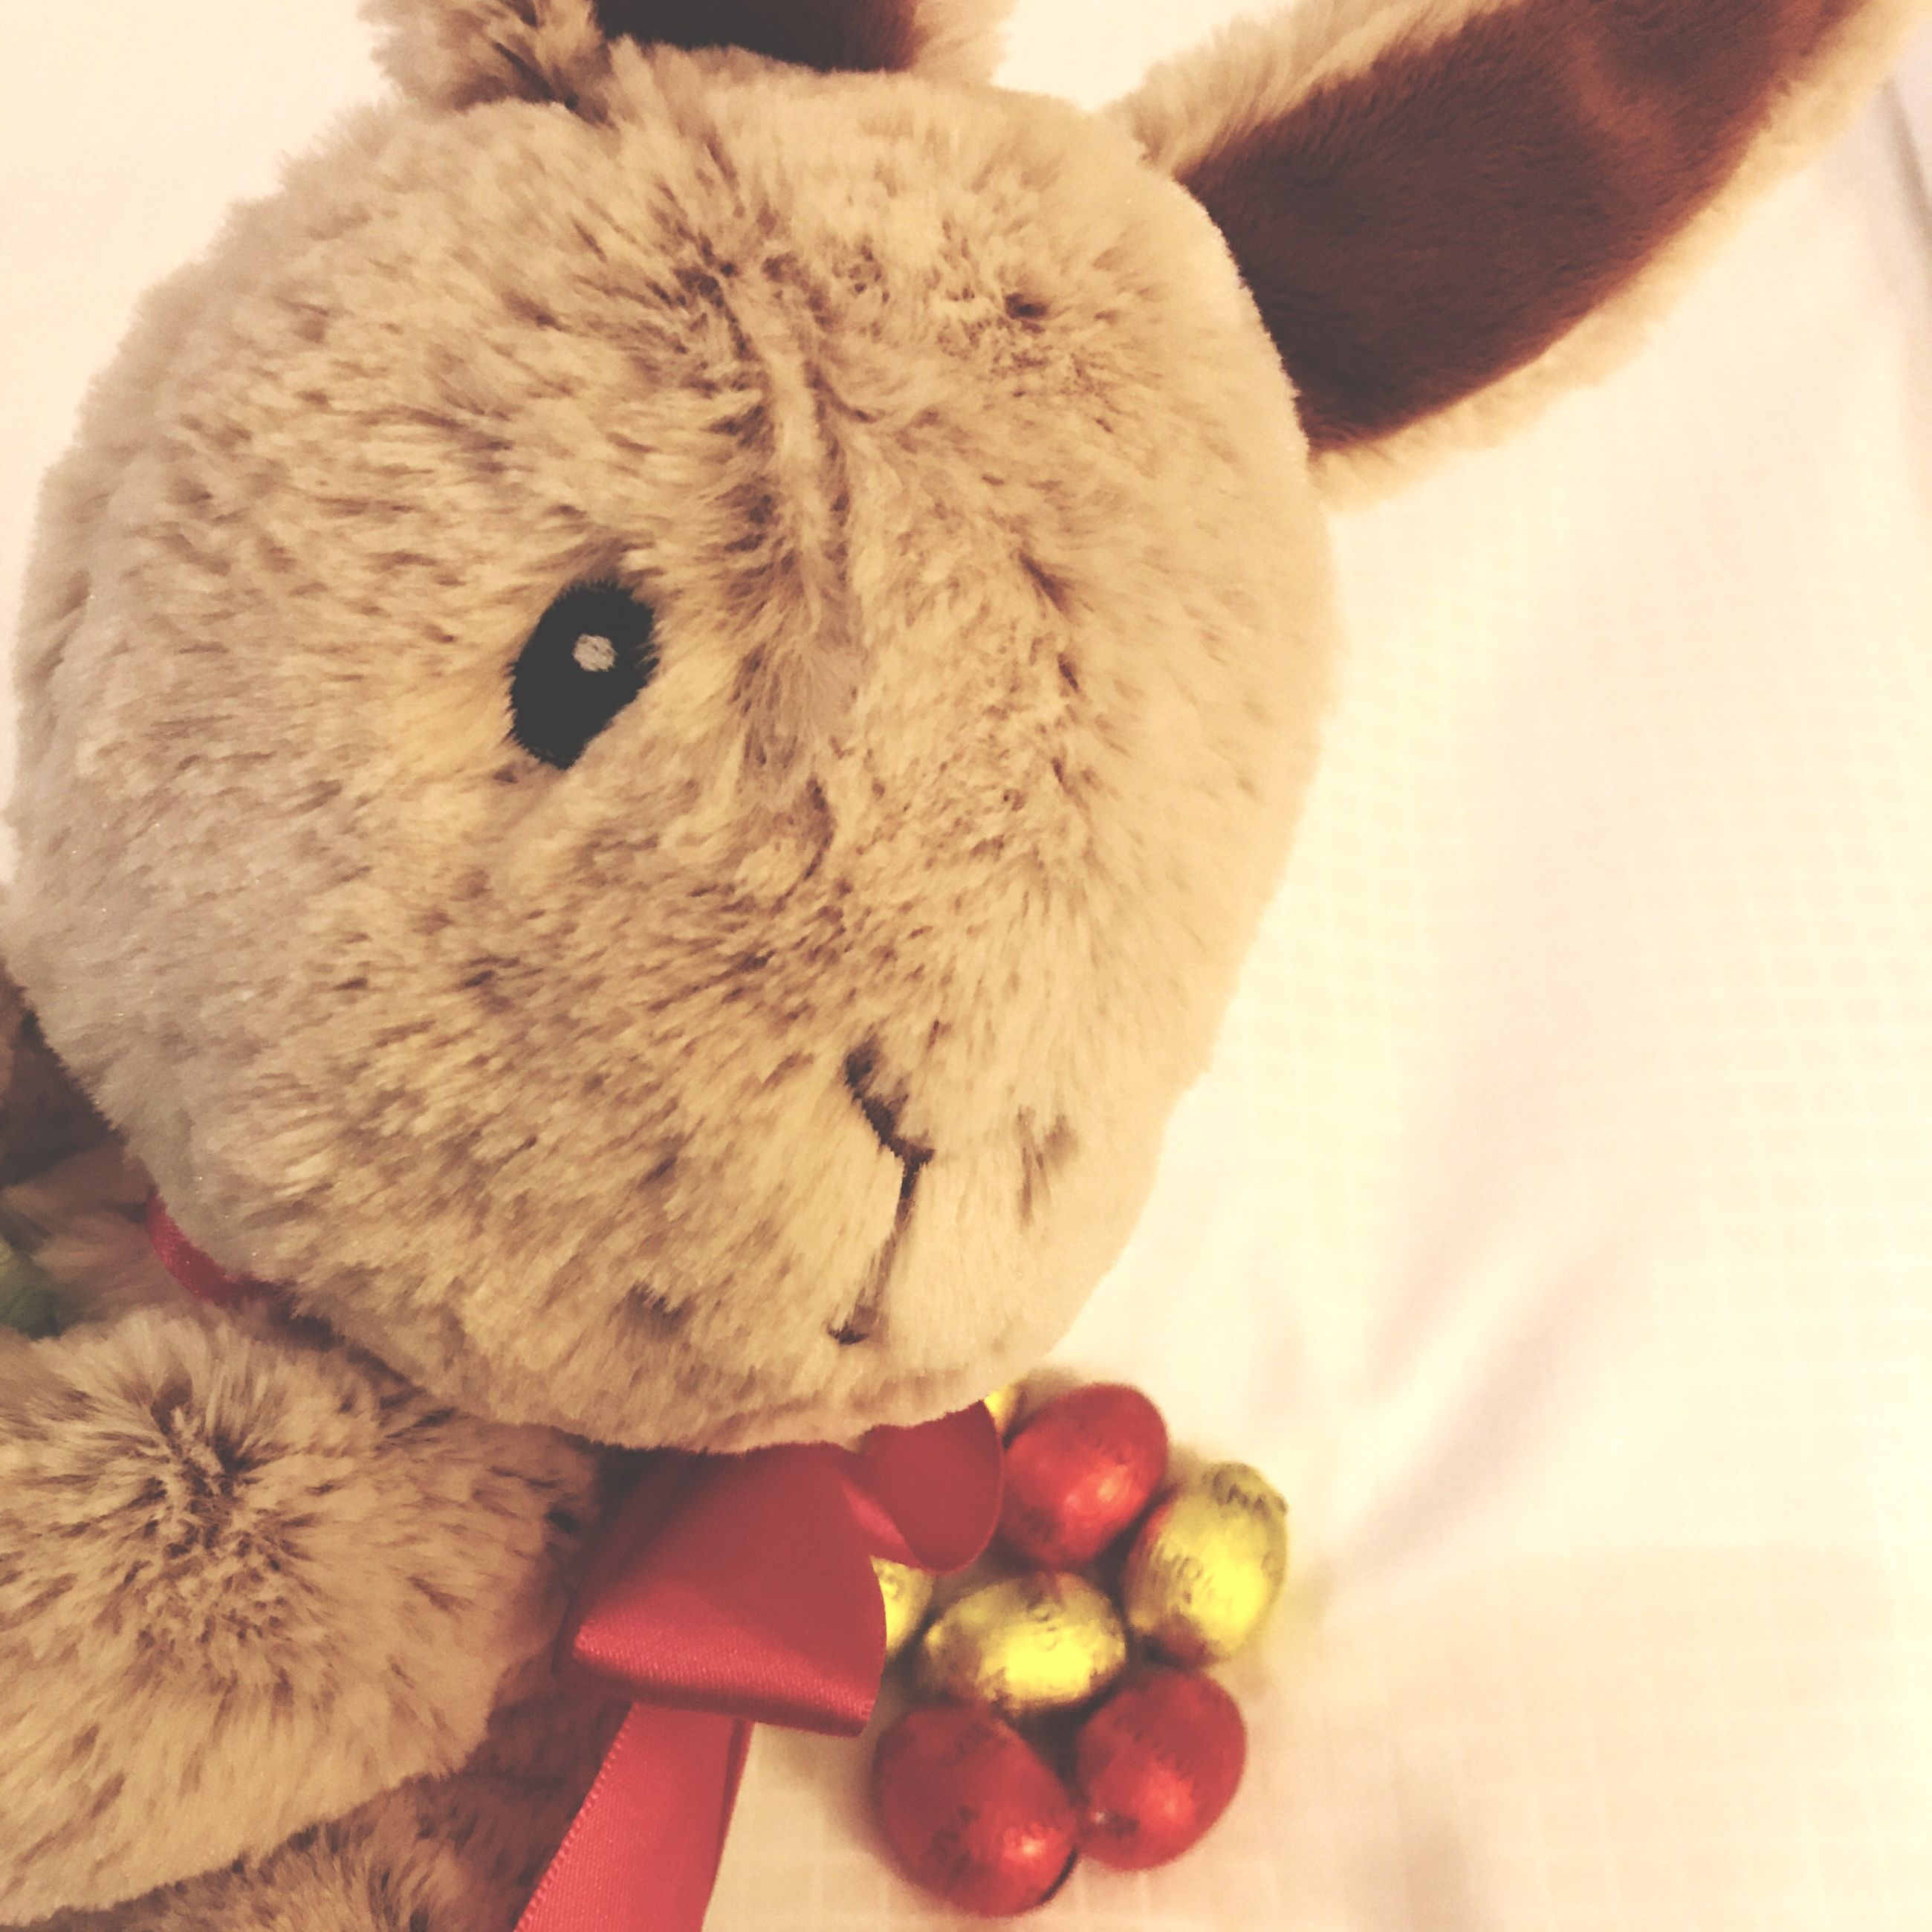 one animal, pets, domestic animals, mammal, close-up, rabbit - animal, stuffed toy, indoors, animal themes, no people, day